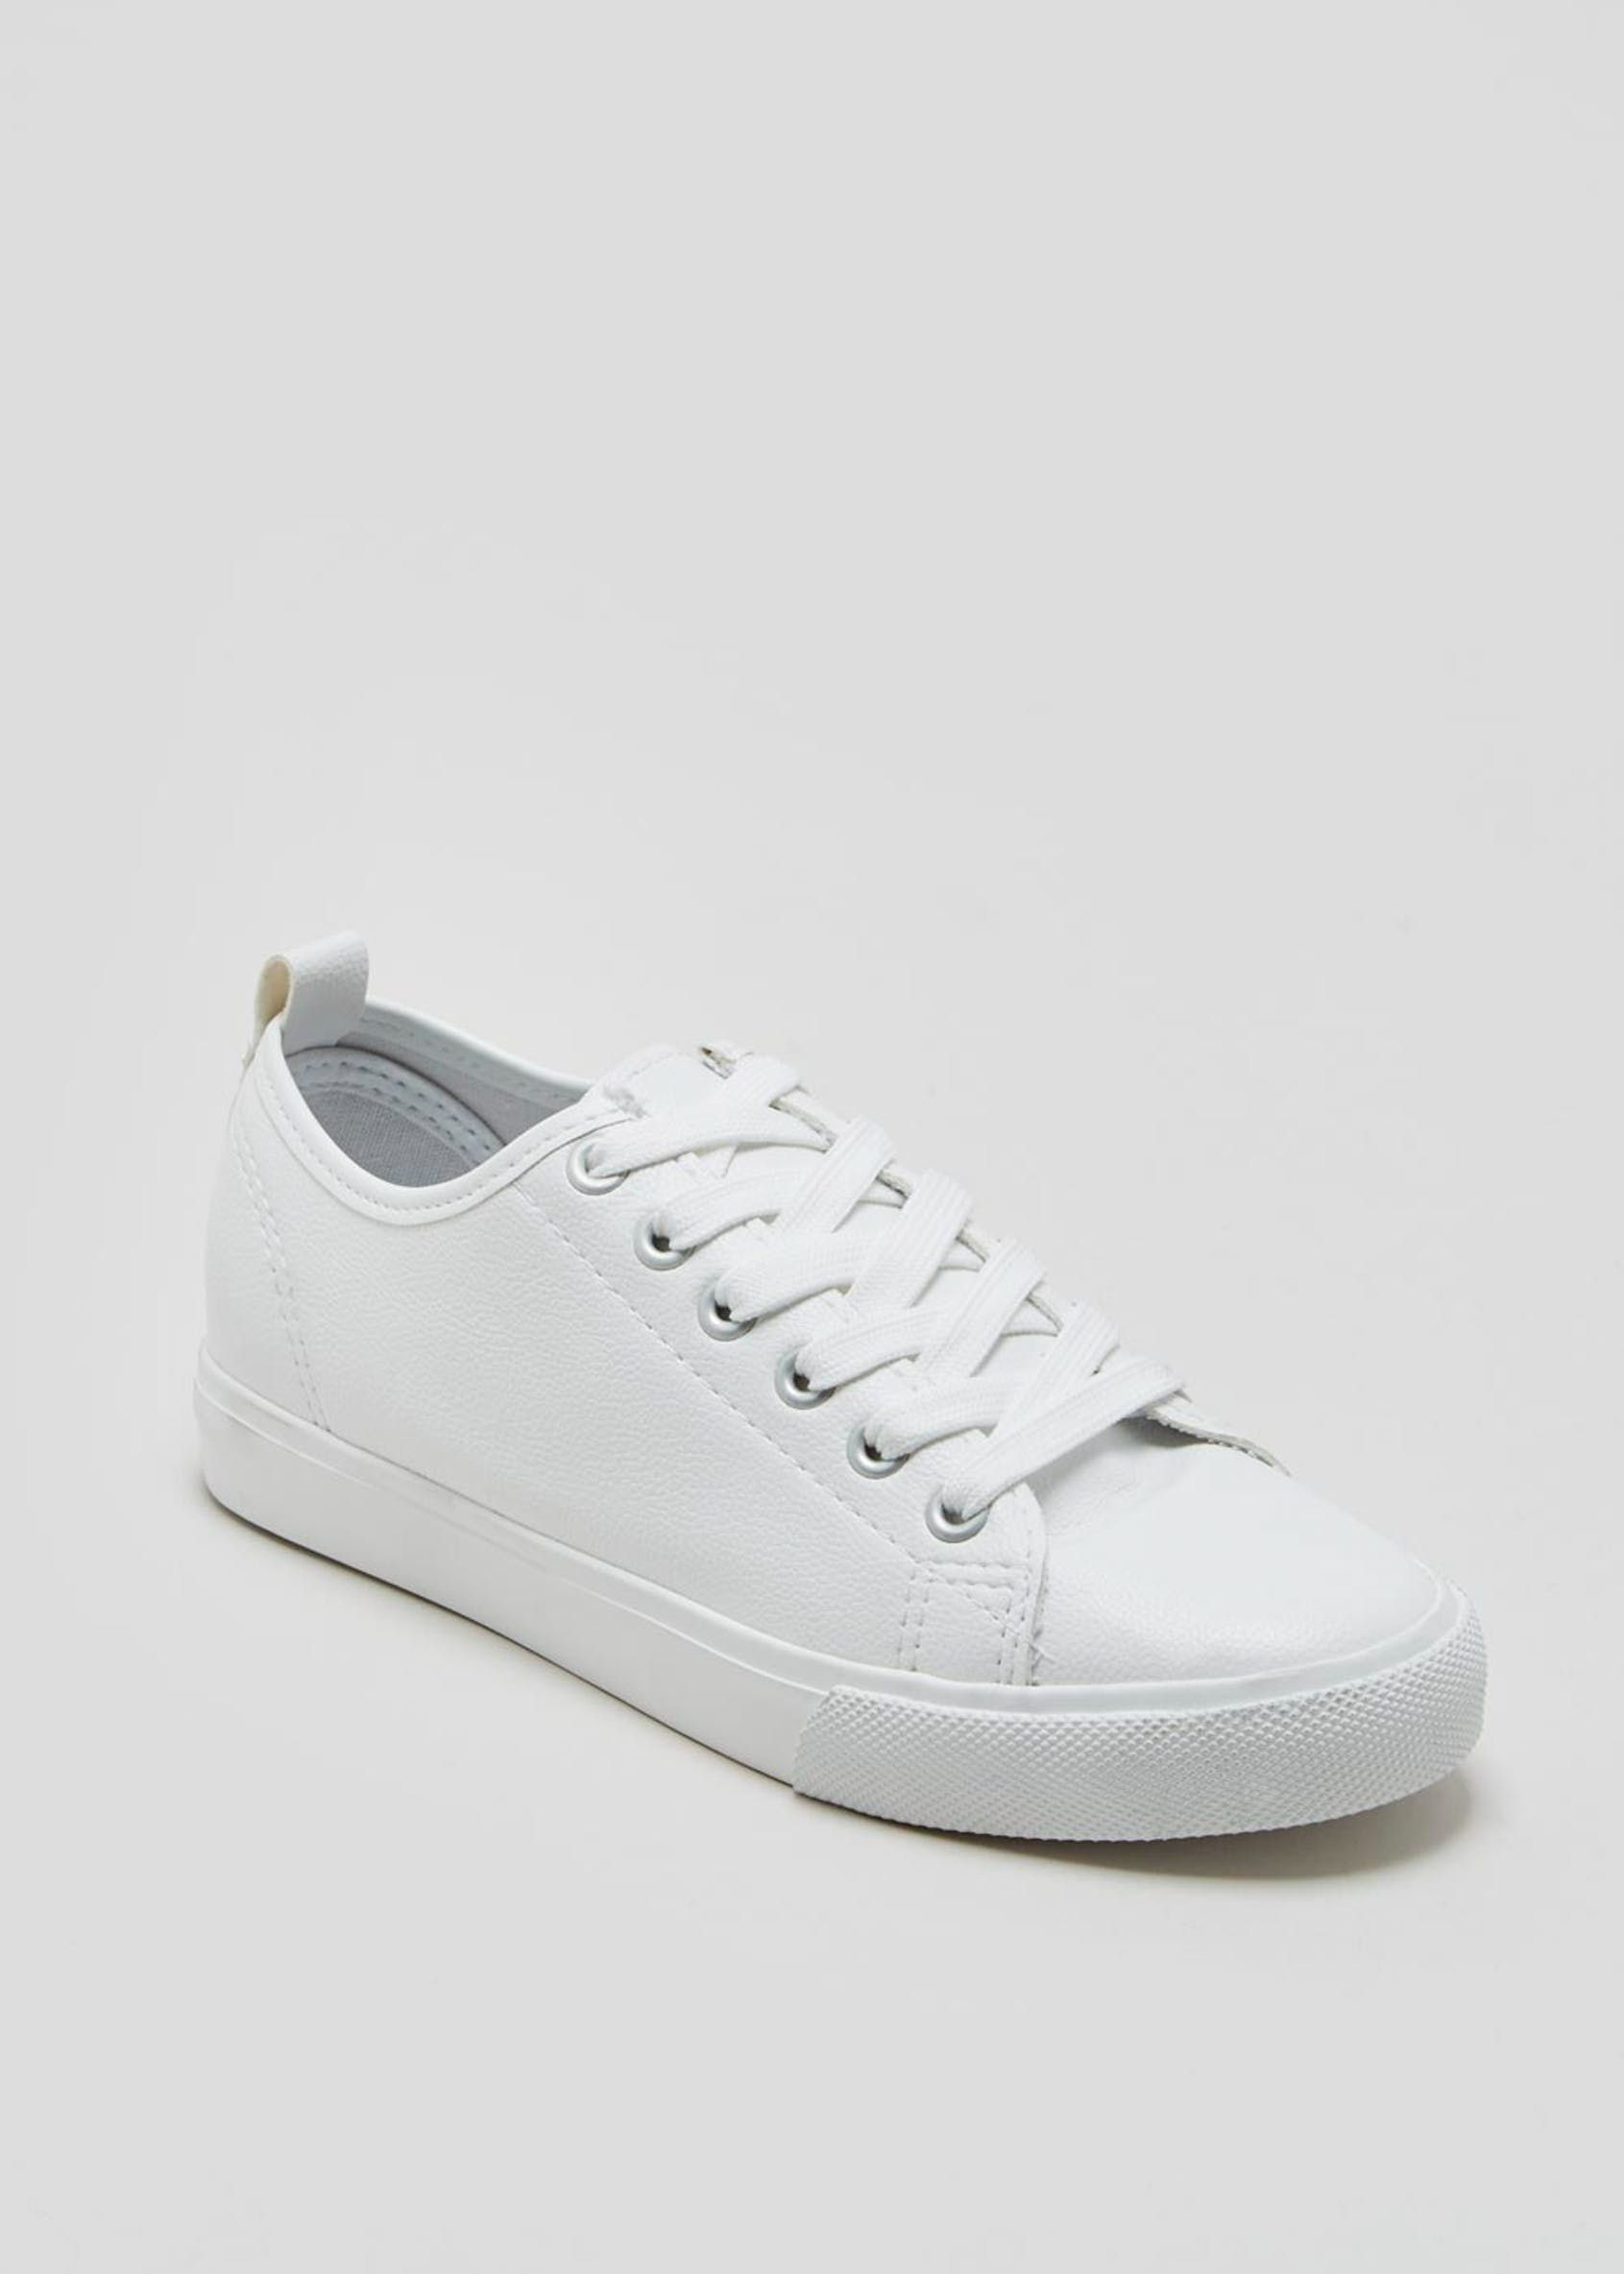 Lace Up Trainers – White | Lace up